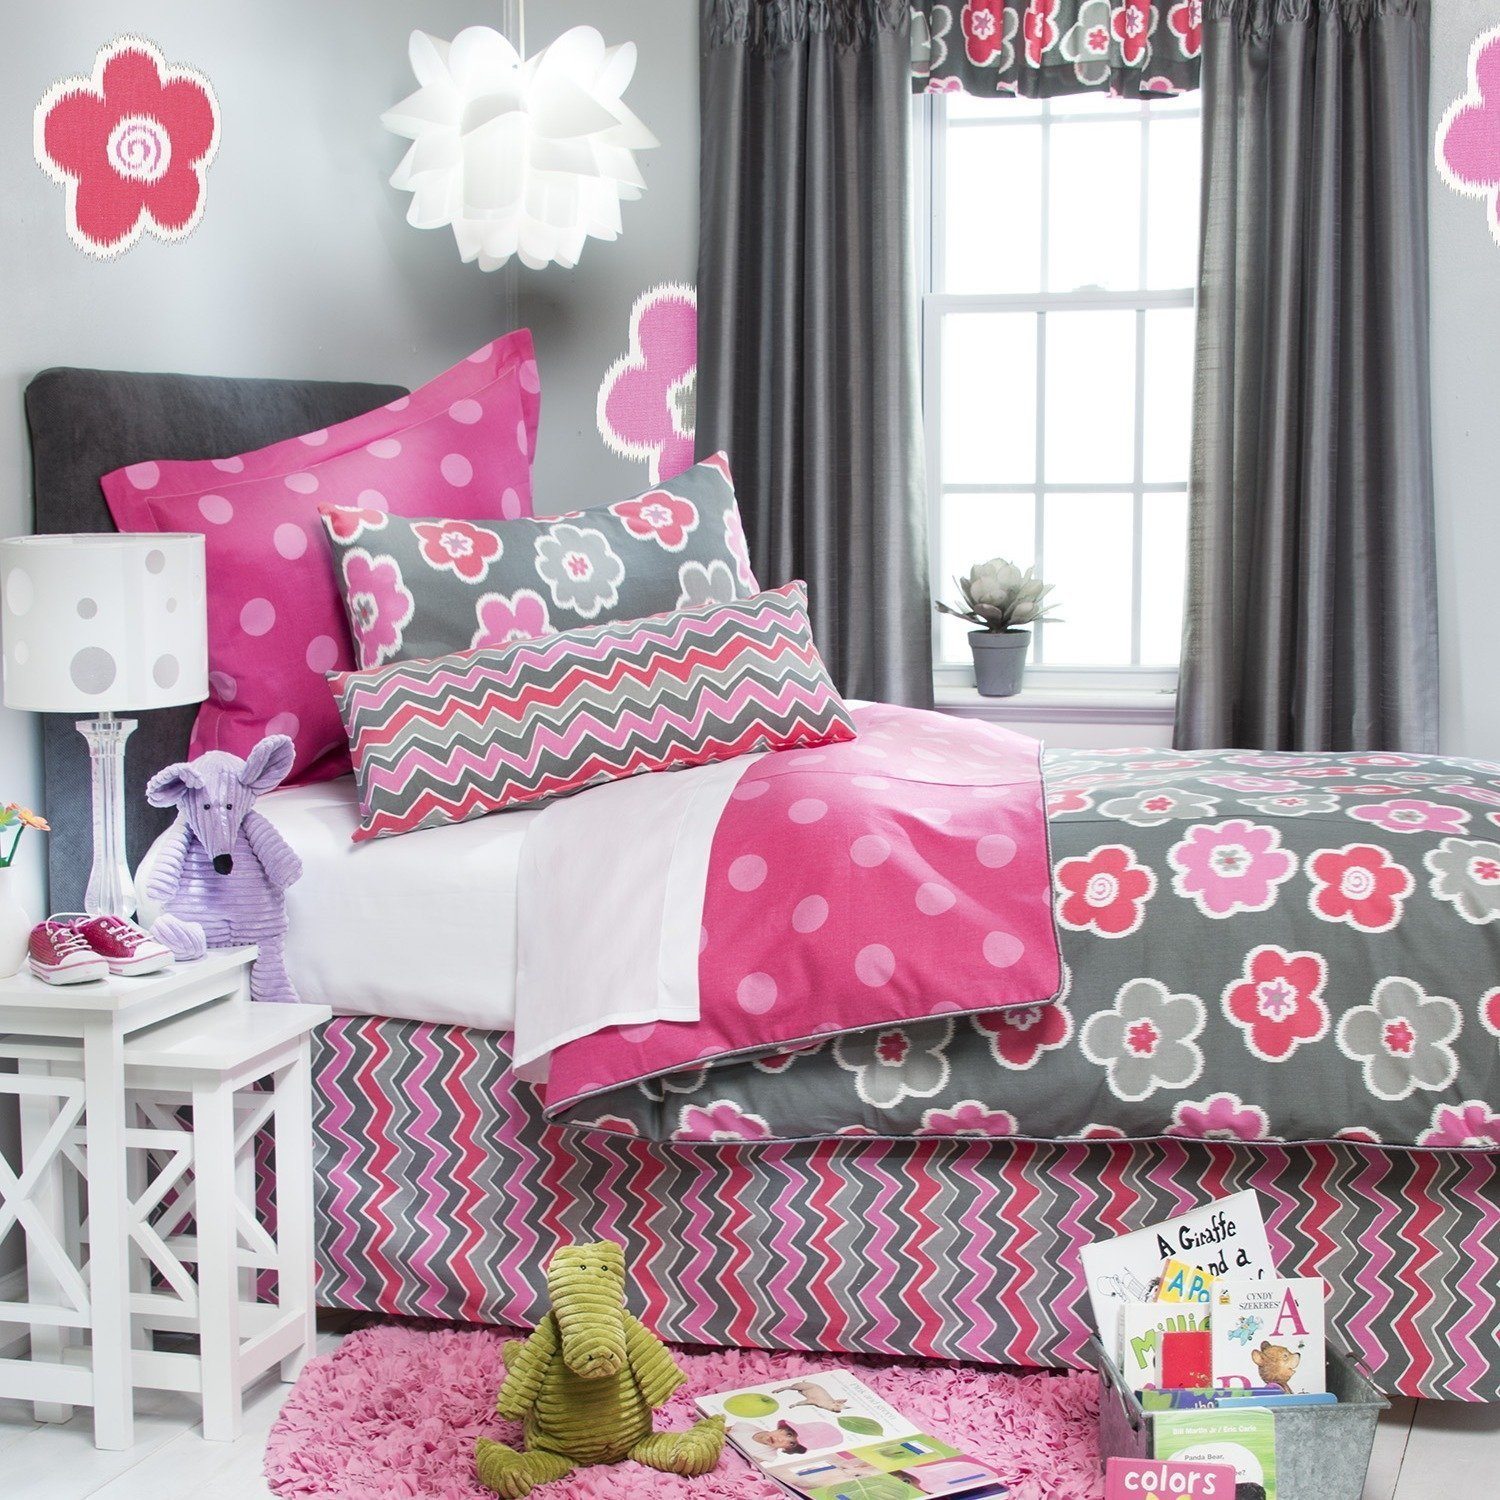 Twin Bedding Sets Healthy Way To Accessorize Your Bedroom